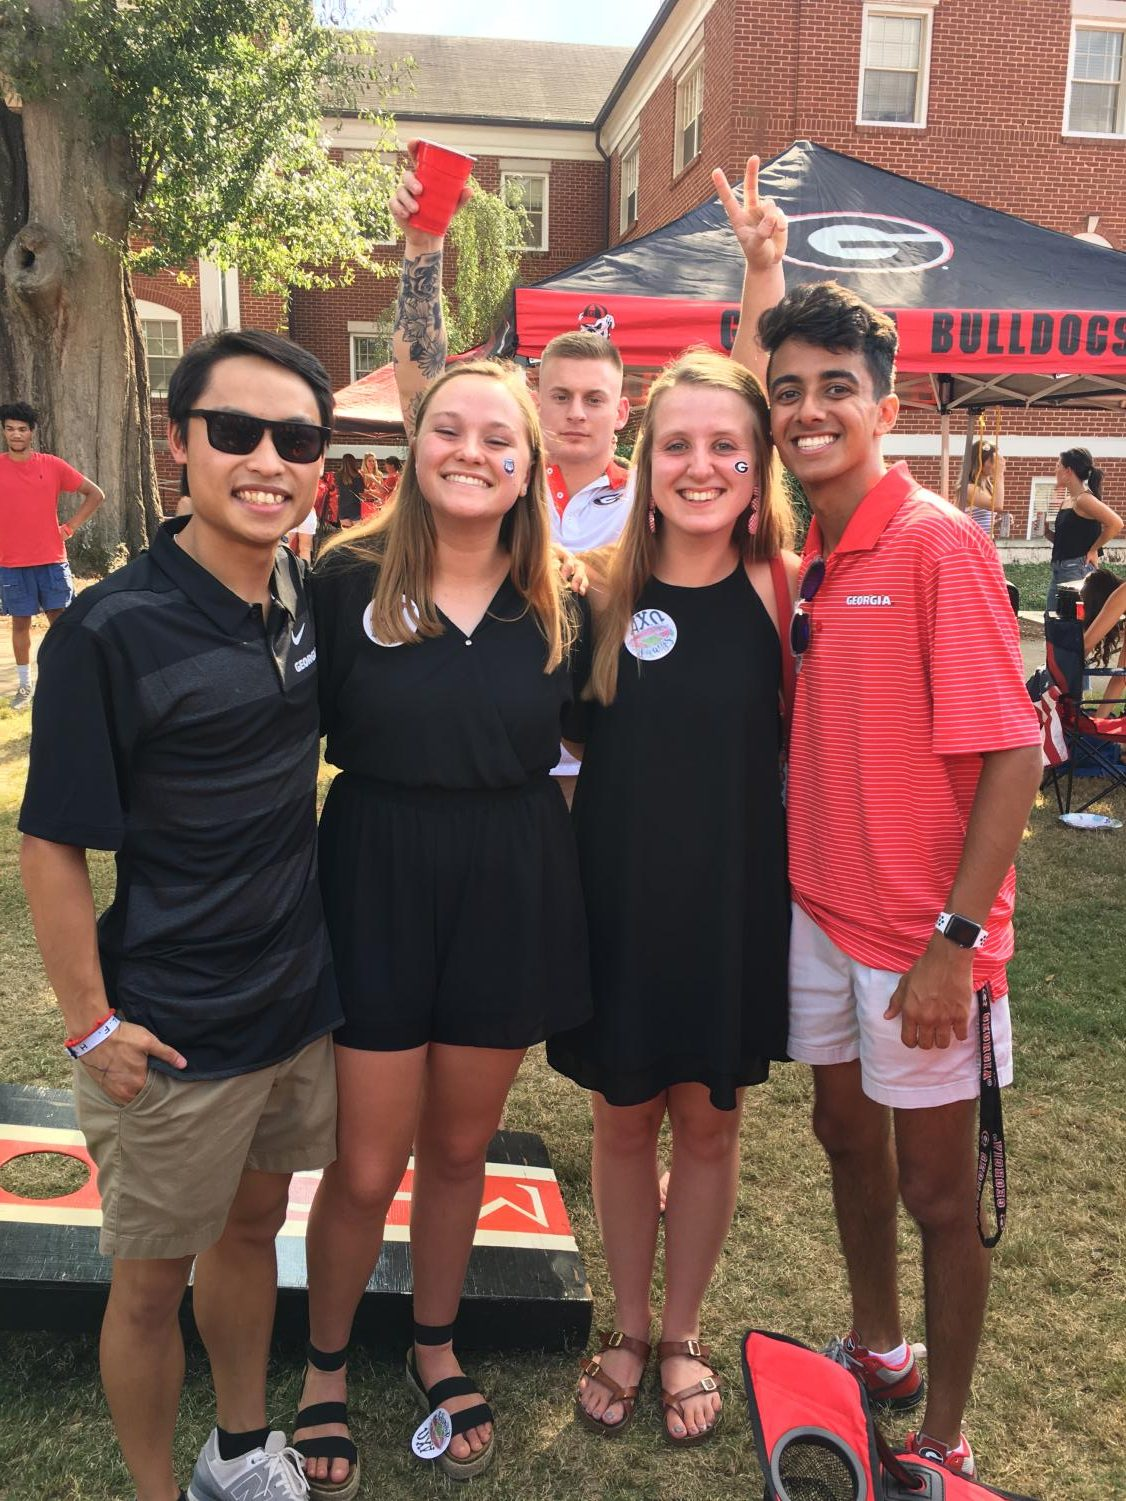 Freshman Thanh Nham poses with a group of friends at a party.